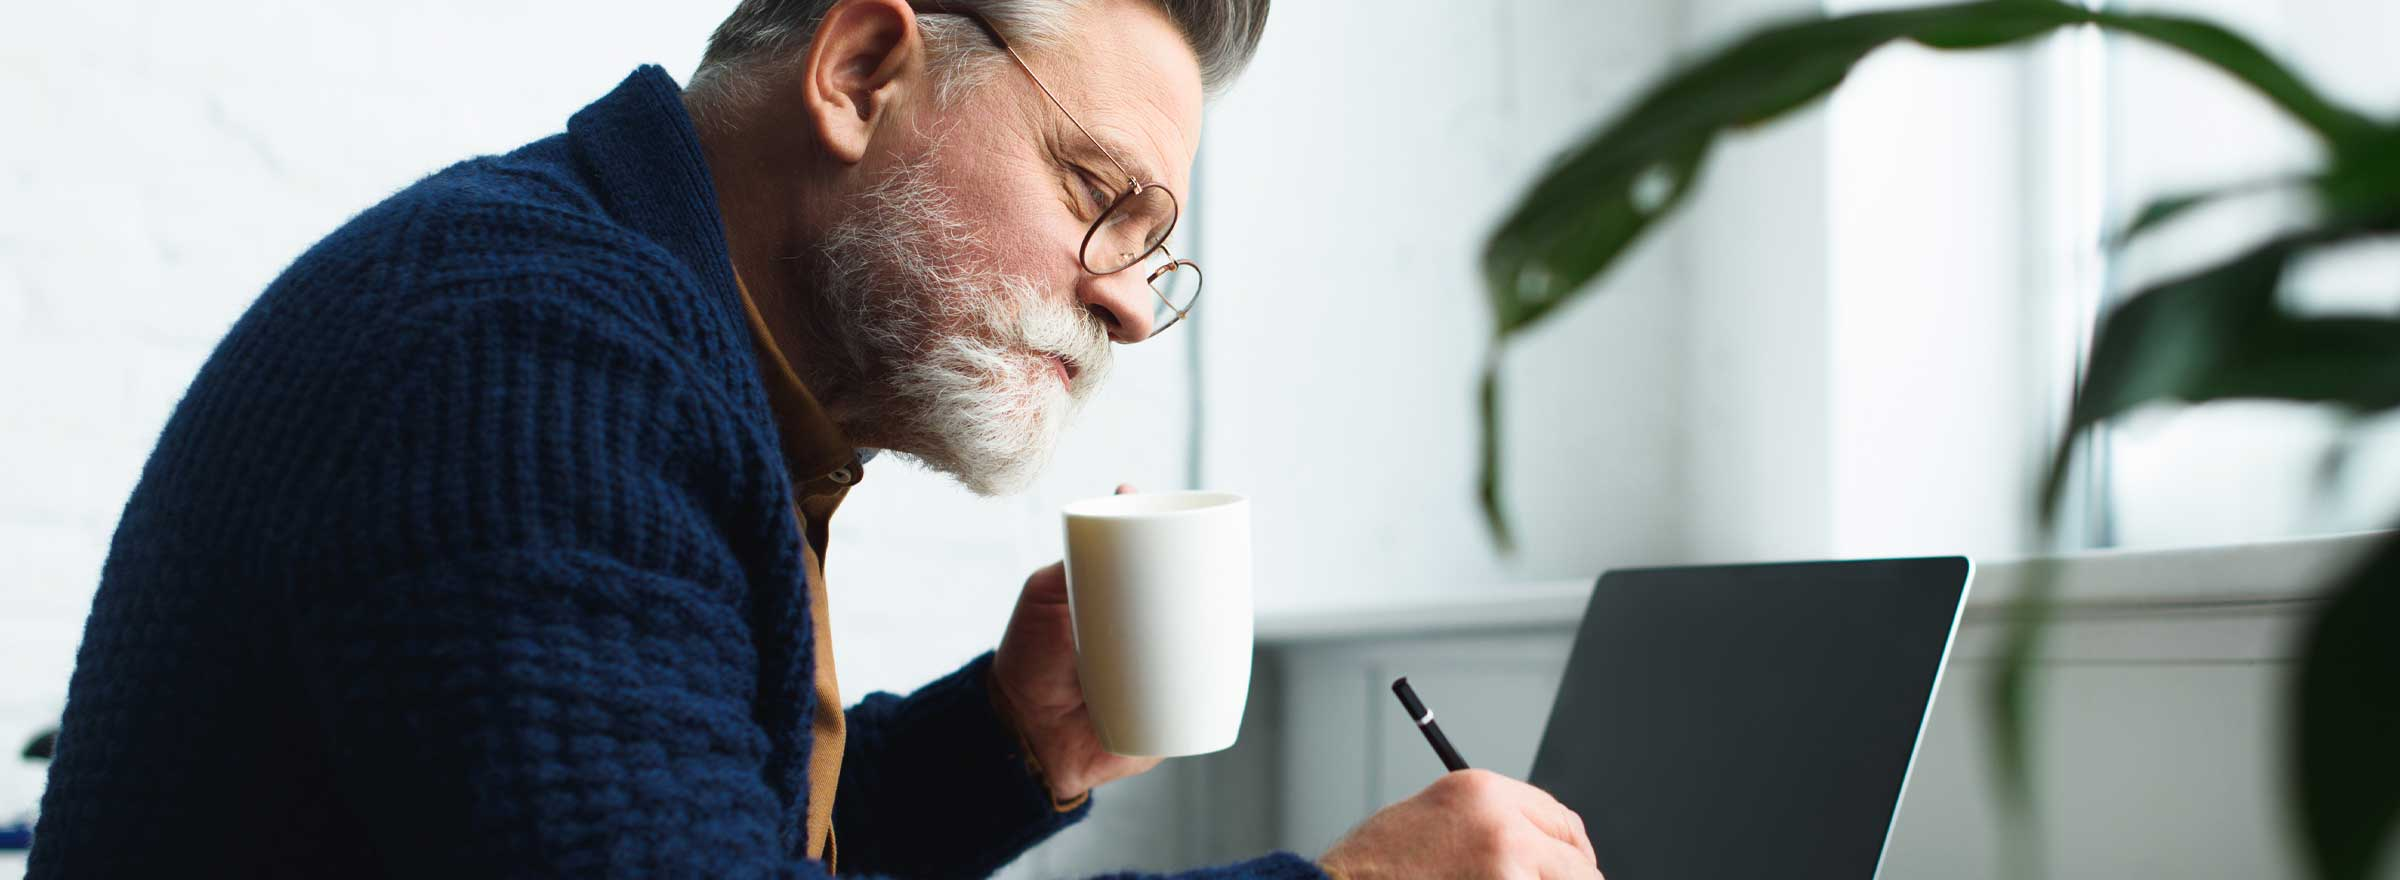 man sitting at a computer, holding a mug, and writing with a pencil or stylus